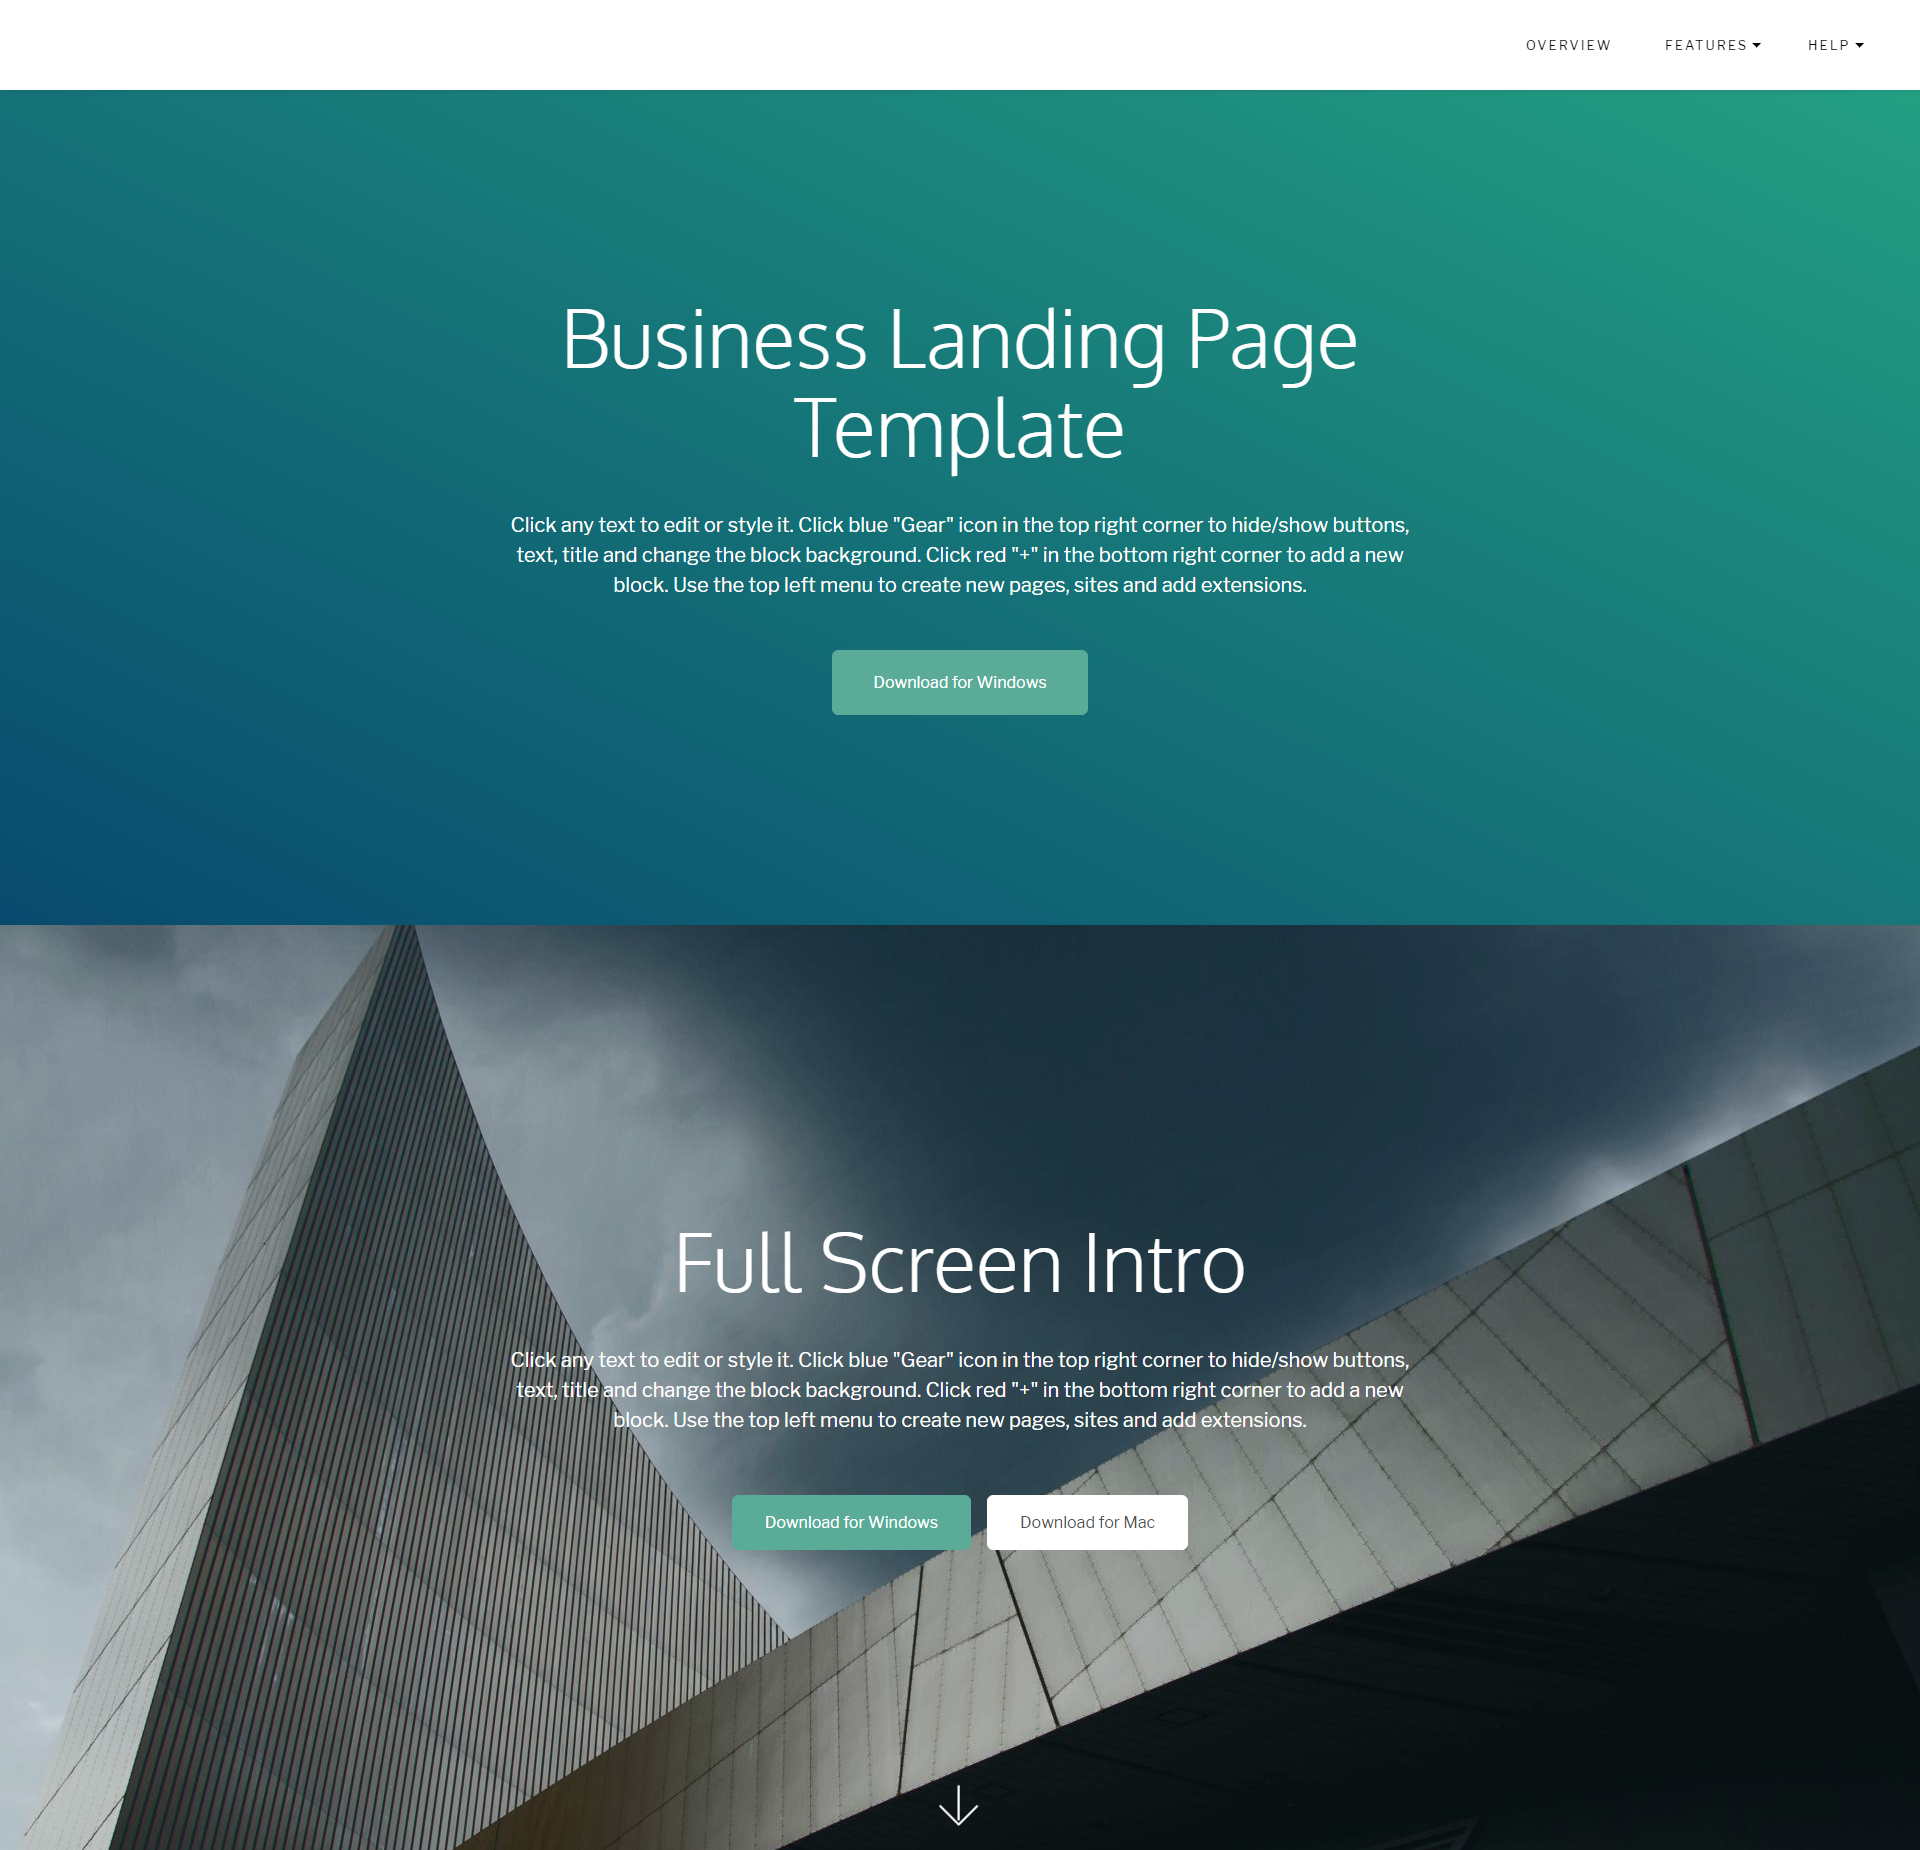 CSS3 Bootstrap Business Landing Page Templates